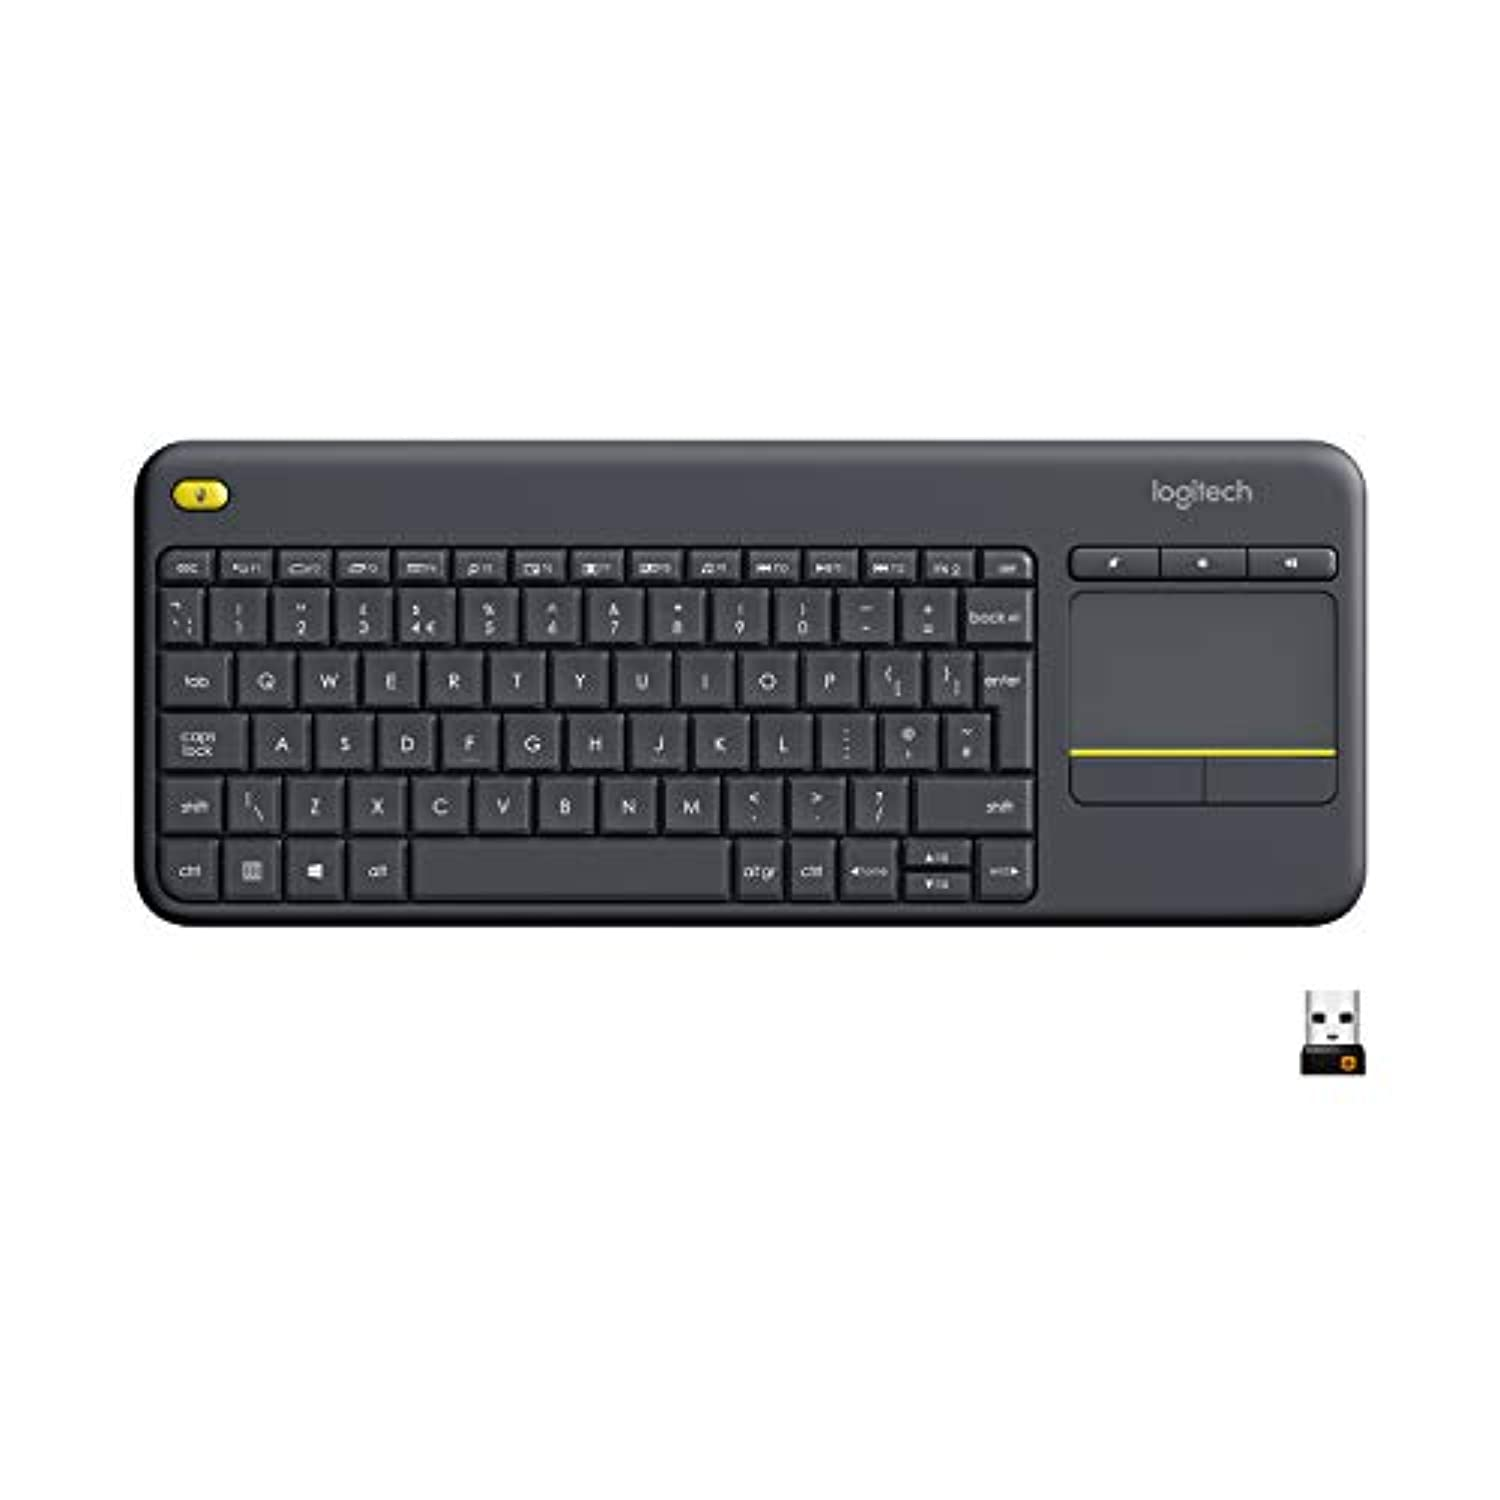 Logitech K400 Plus Wireless Livingroom Keyboard with Touchpad - smrt-life.com